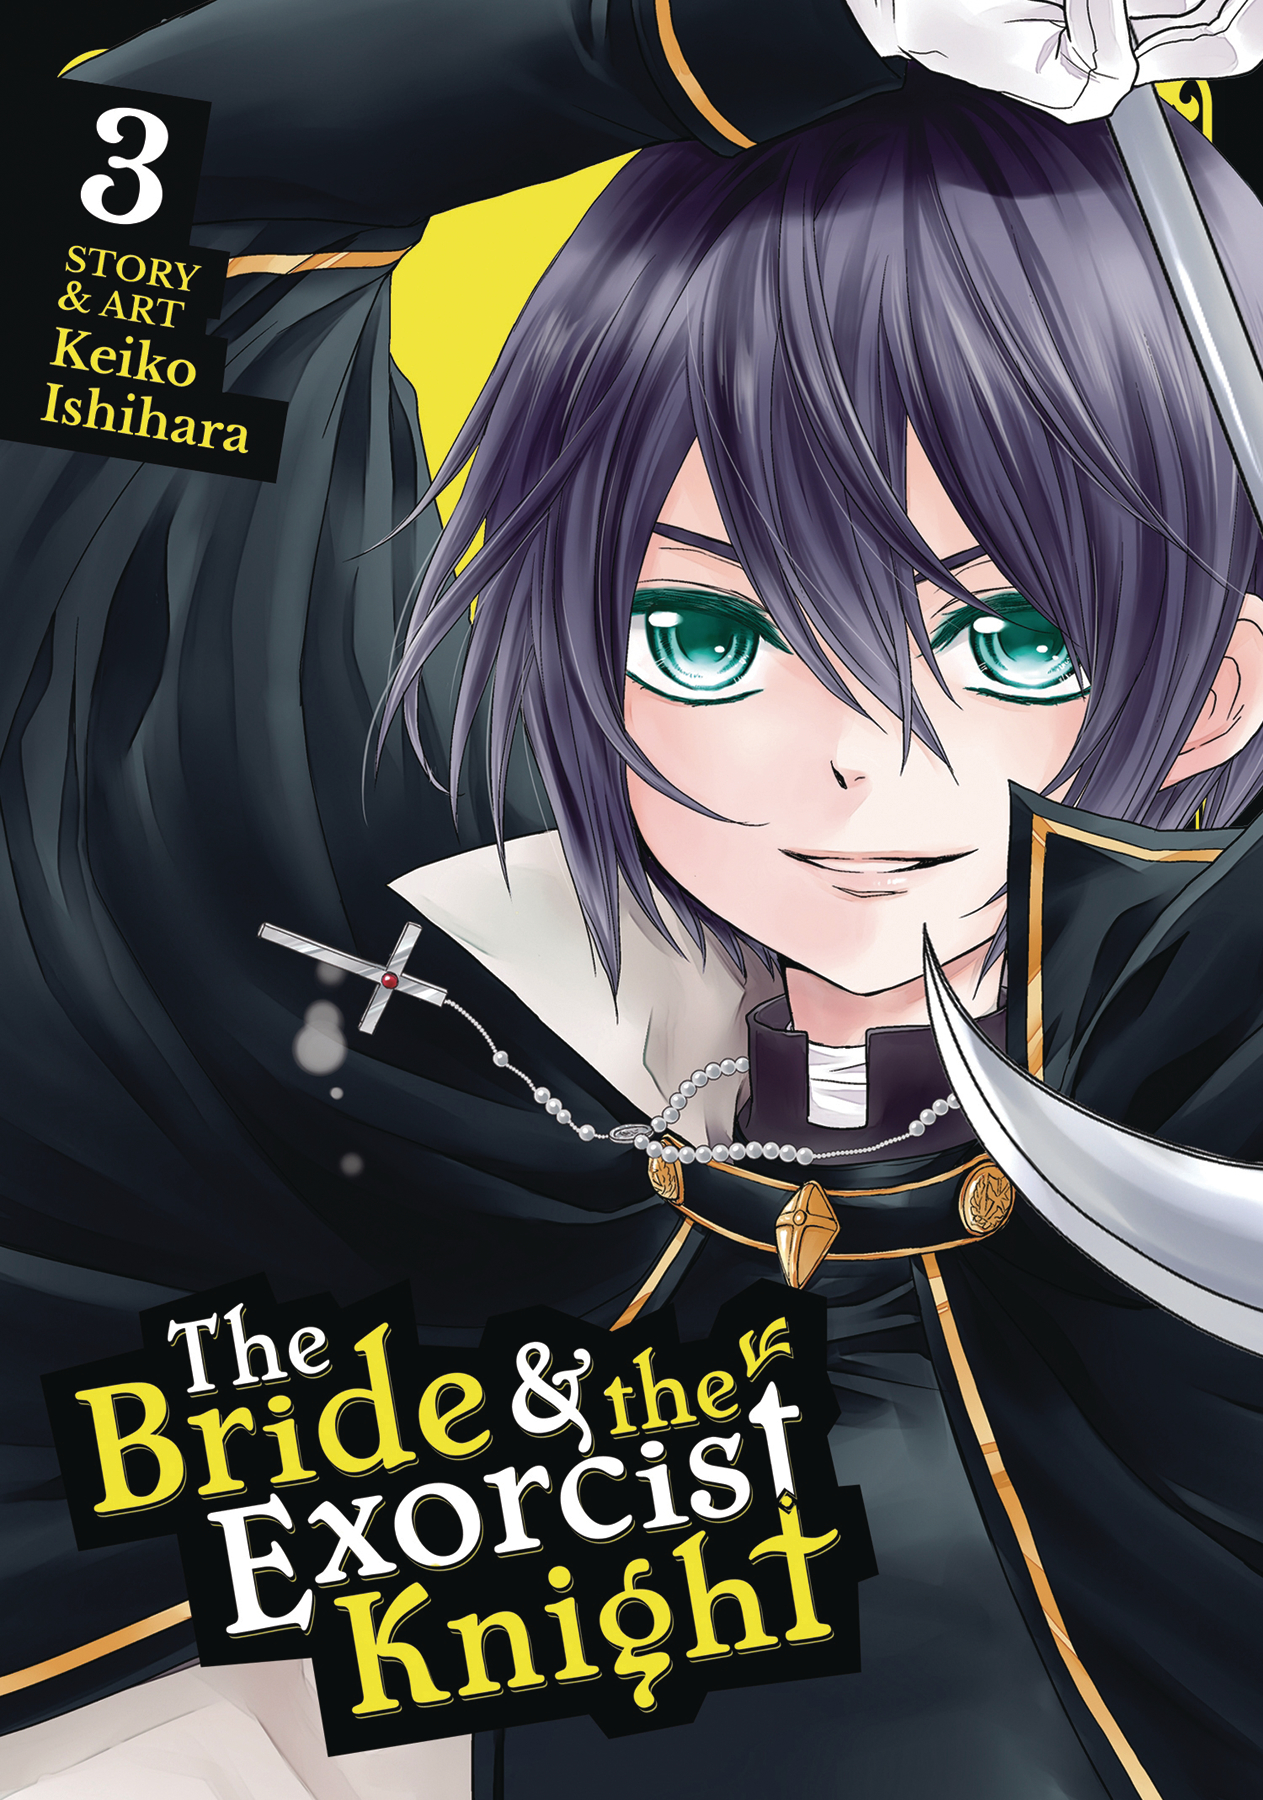 BRIDE & EXORCIST KNIGHT GN VOL 03